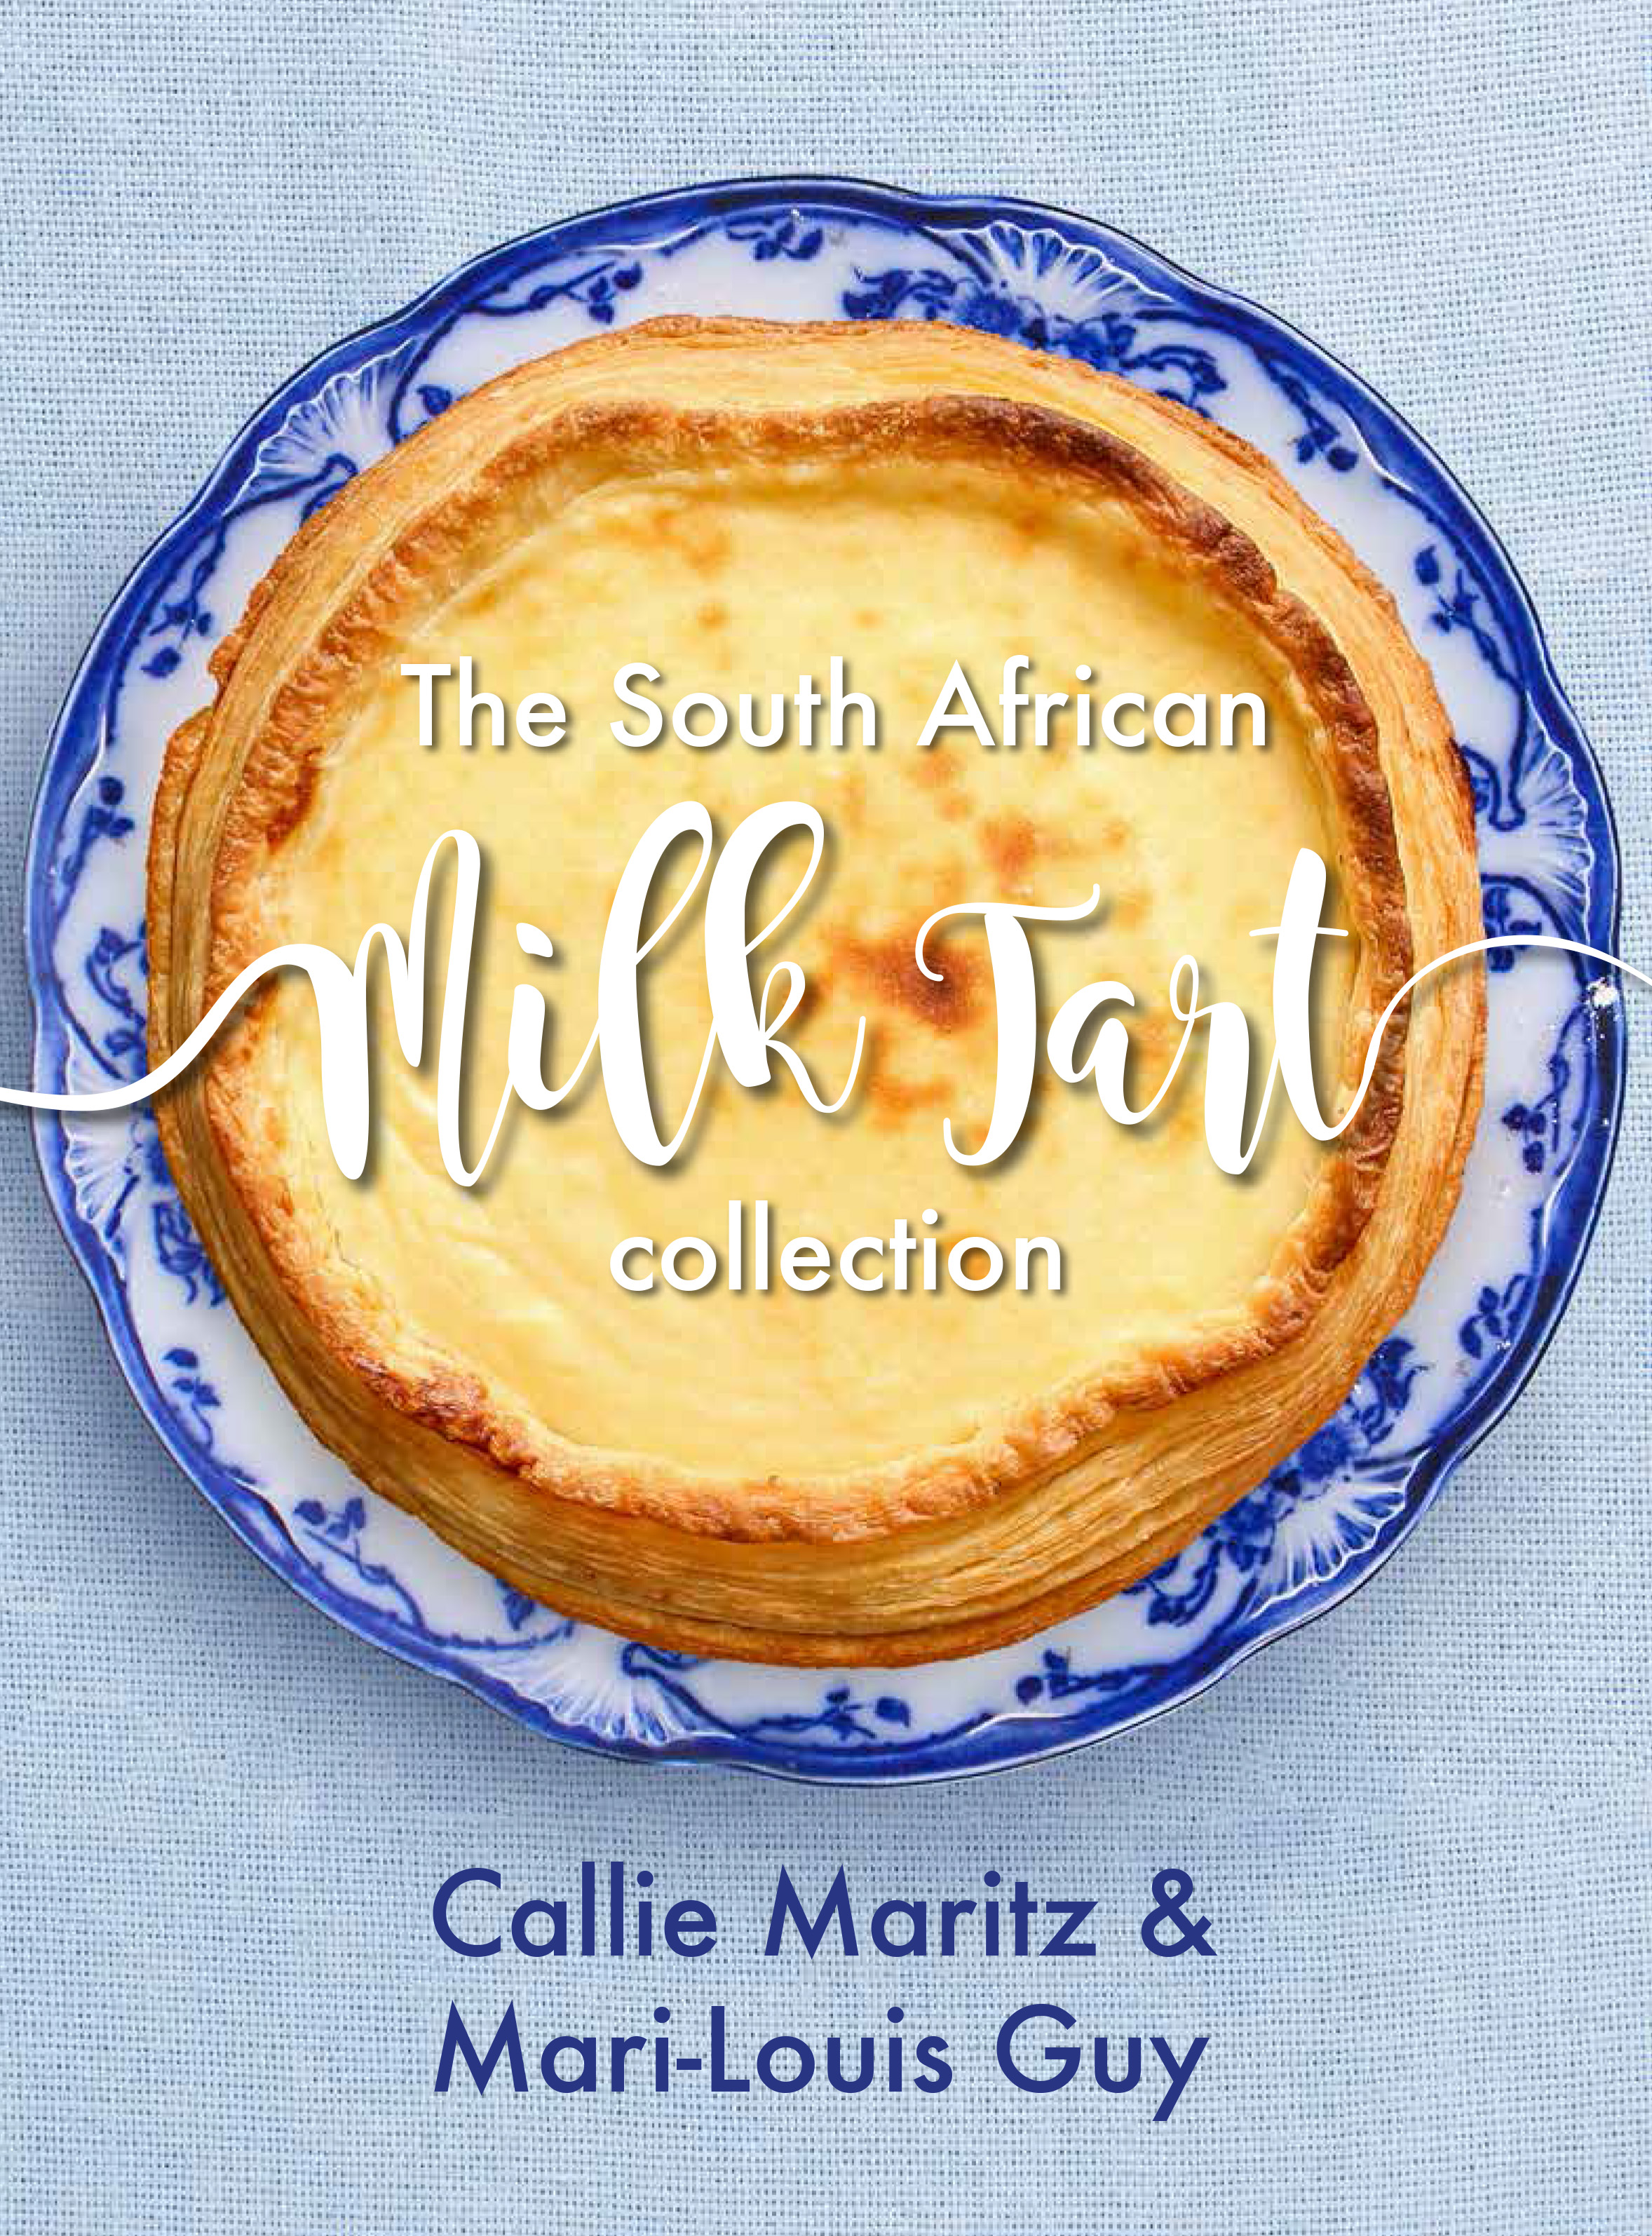 Picture of The South African milk tart collection